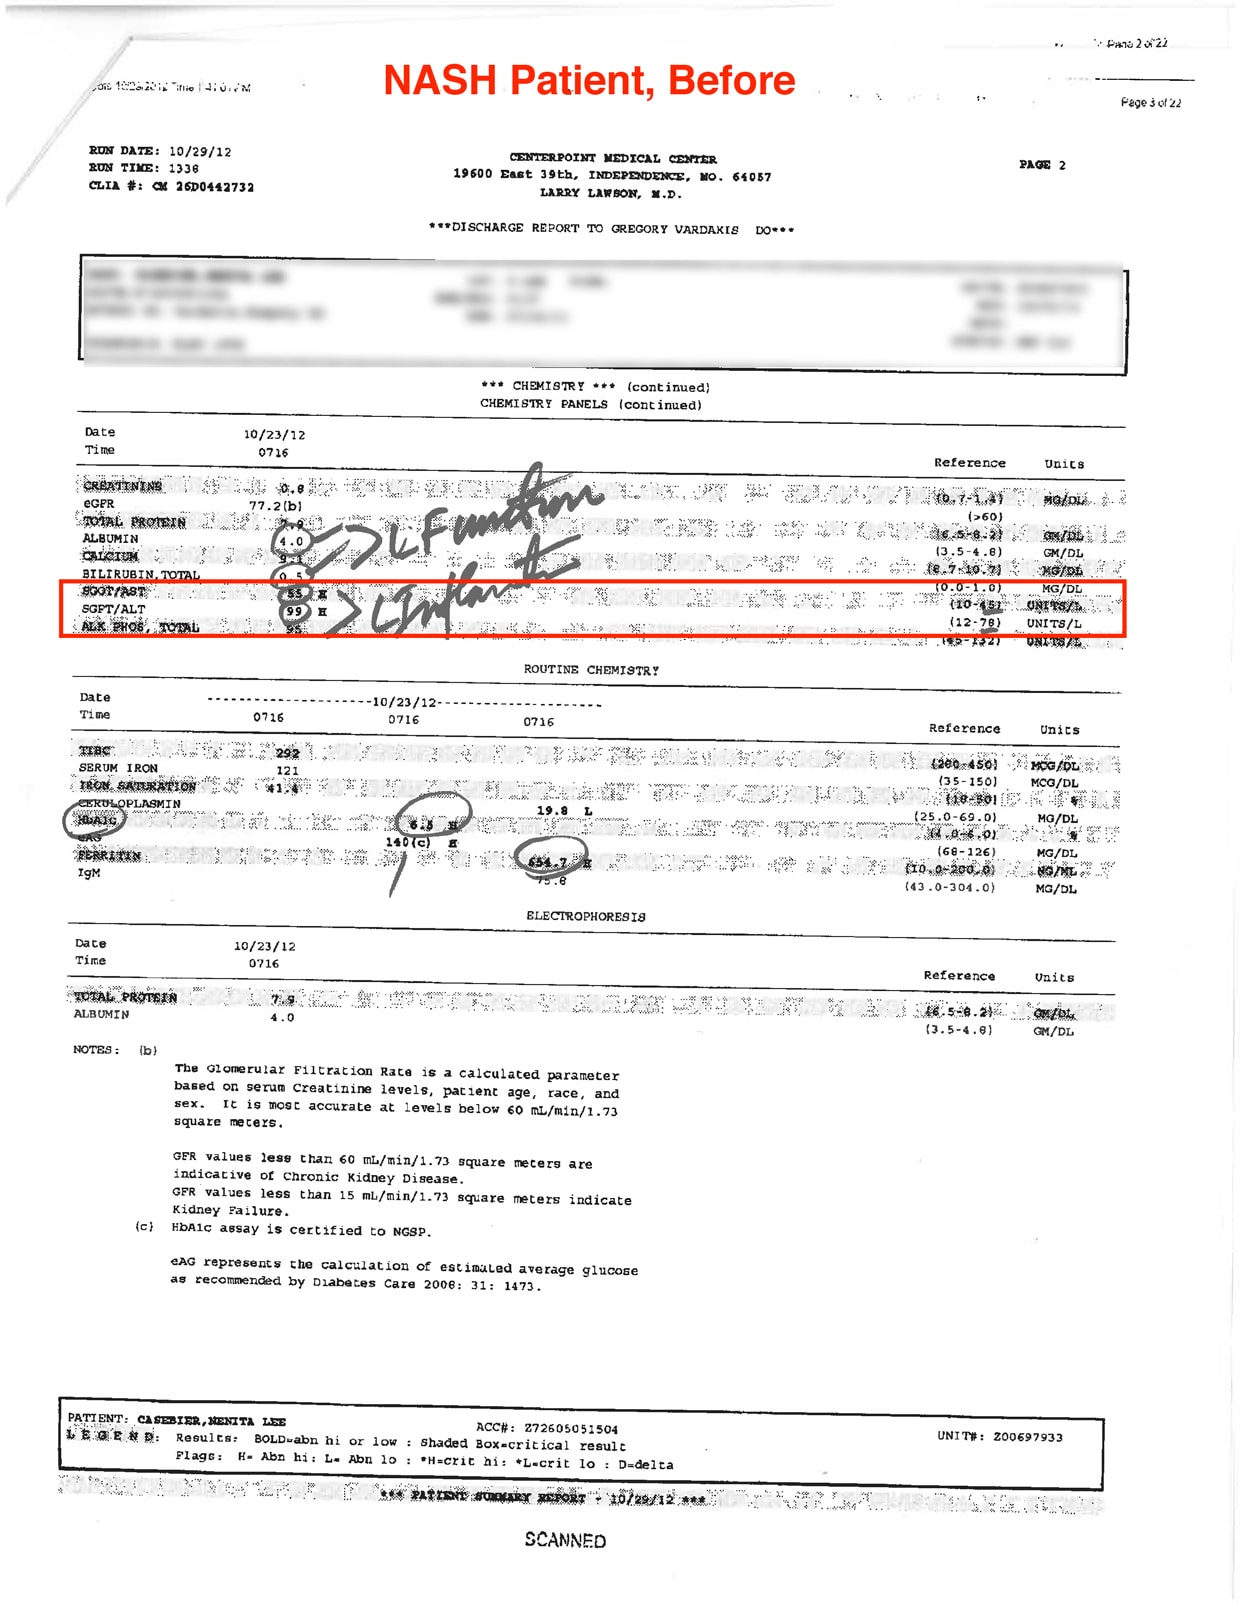 blood test report - Before use YHK Liver Therapy